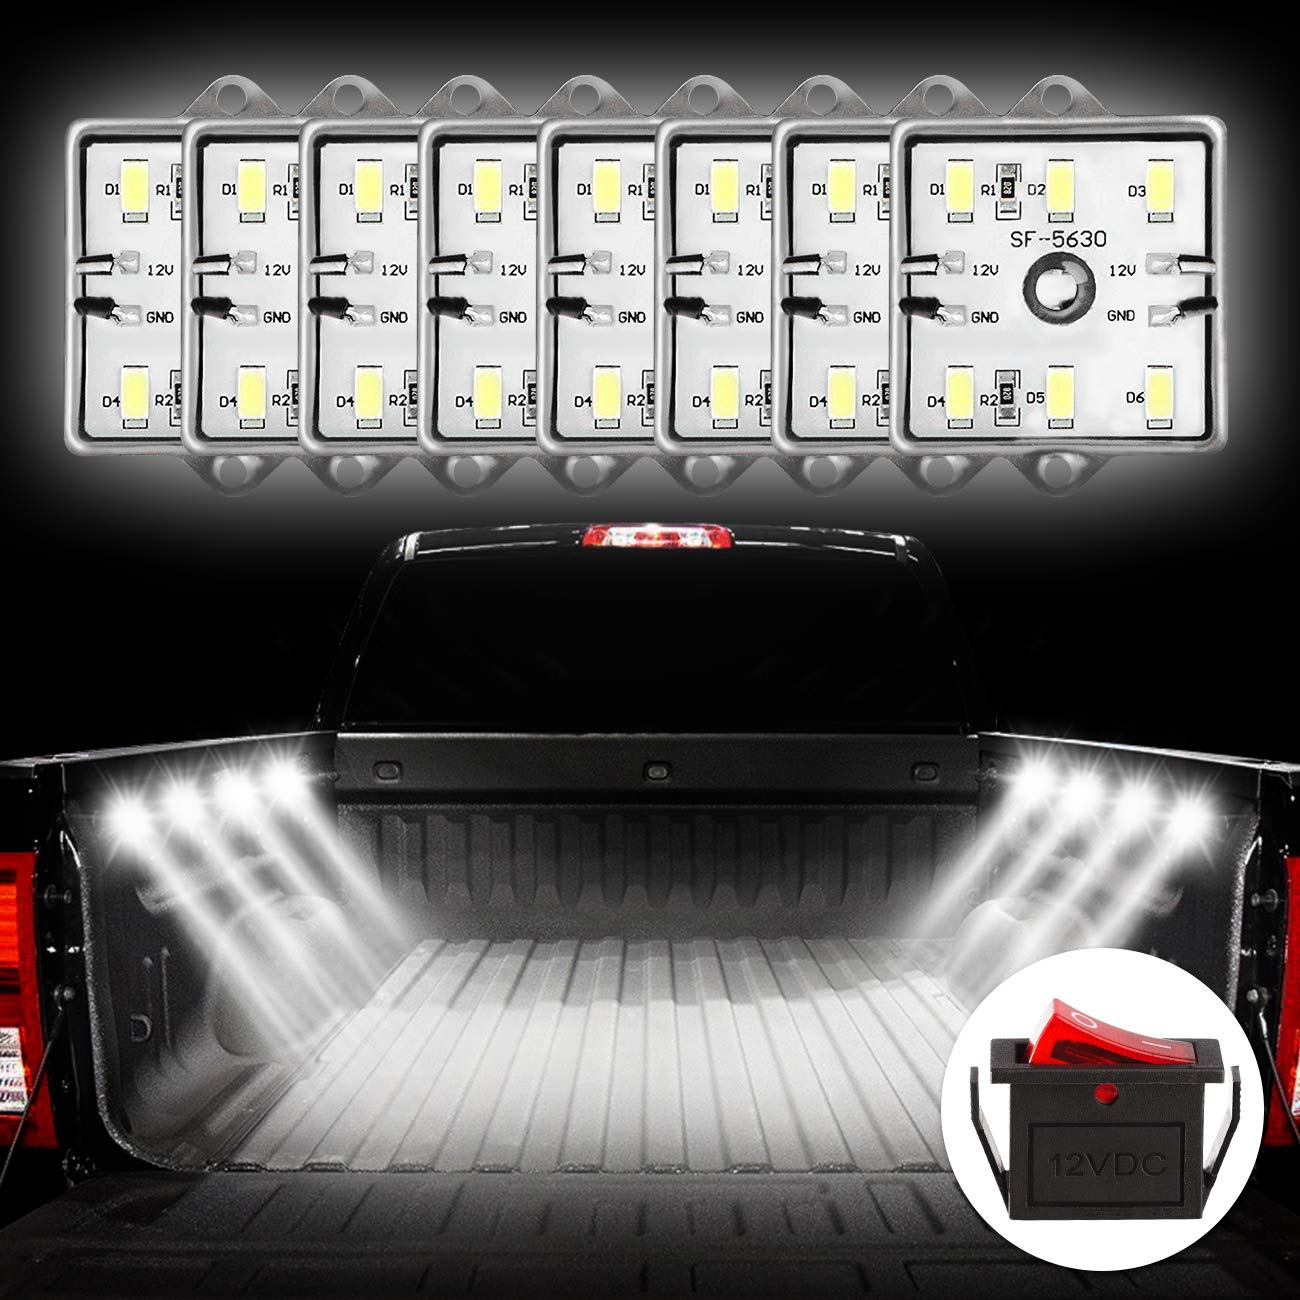 Favoto Truck Bed Light Van Interior Light RV Interior Lights 5730 SMD Super Bright On/Off Switch Included IP67 Waterproof LED Ceiling Lights for Van RV Boats Caravans Trailers (8 Modules) by Favoto